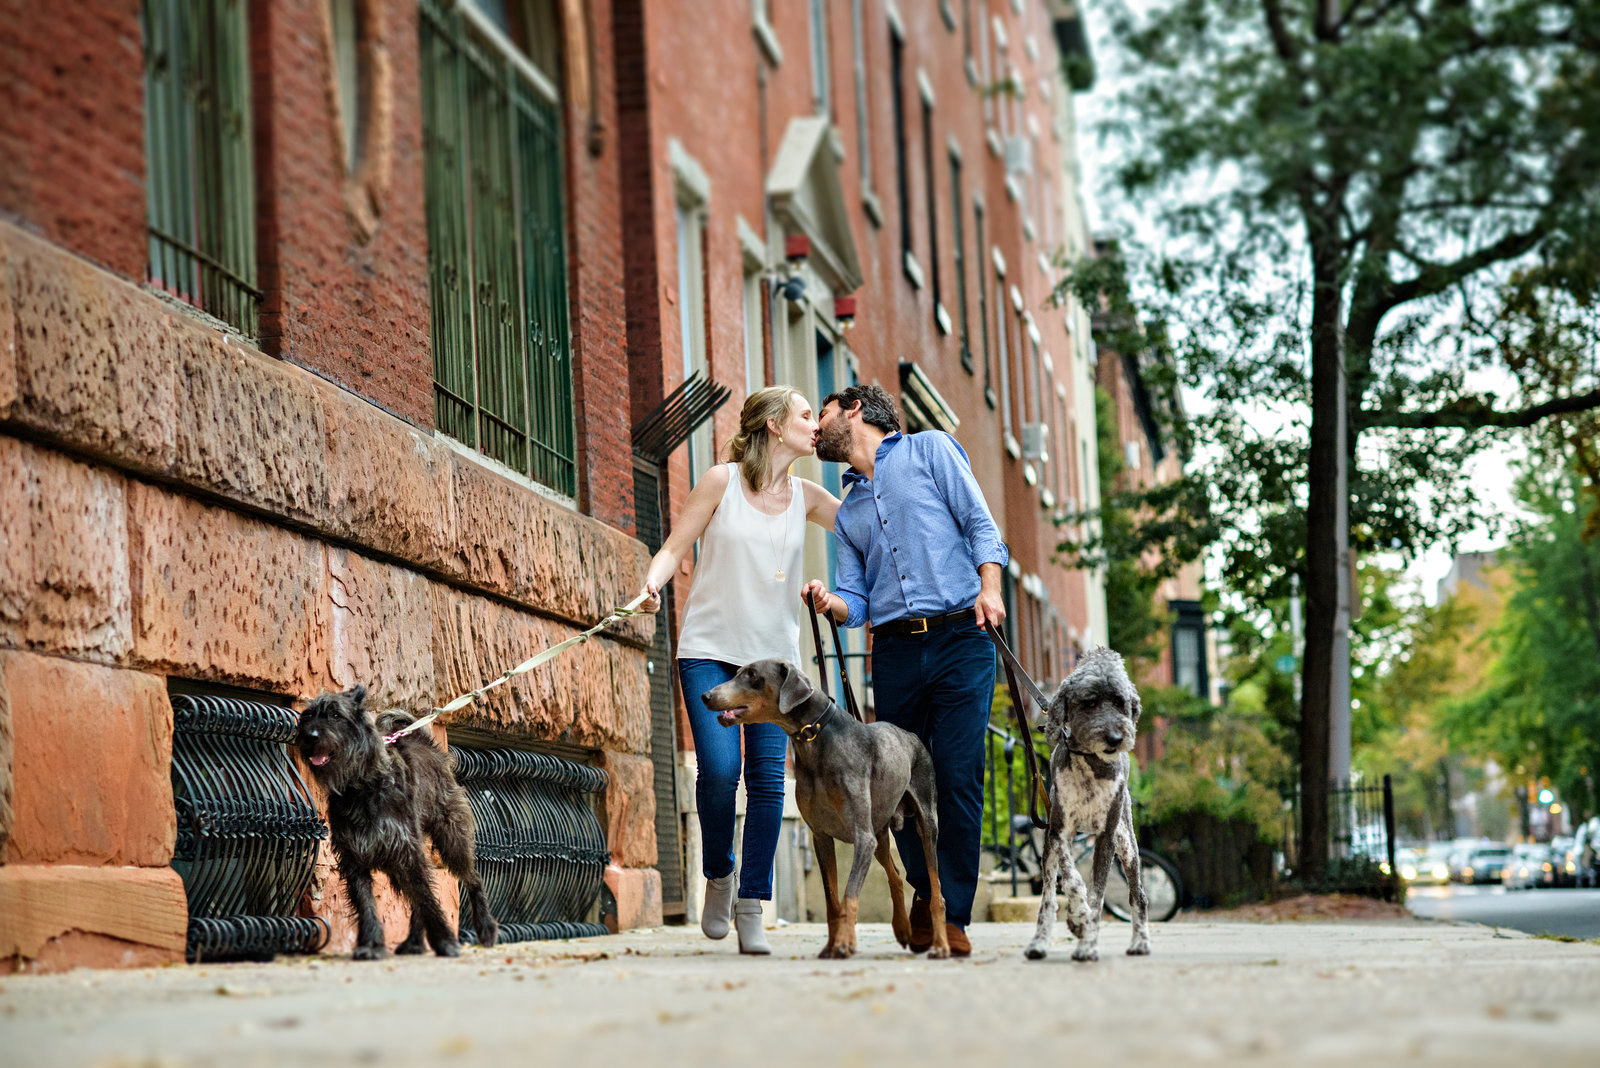 A fun philly couple walk their dogs.